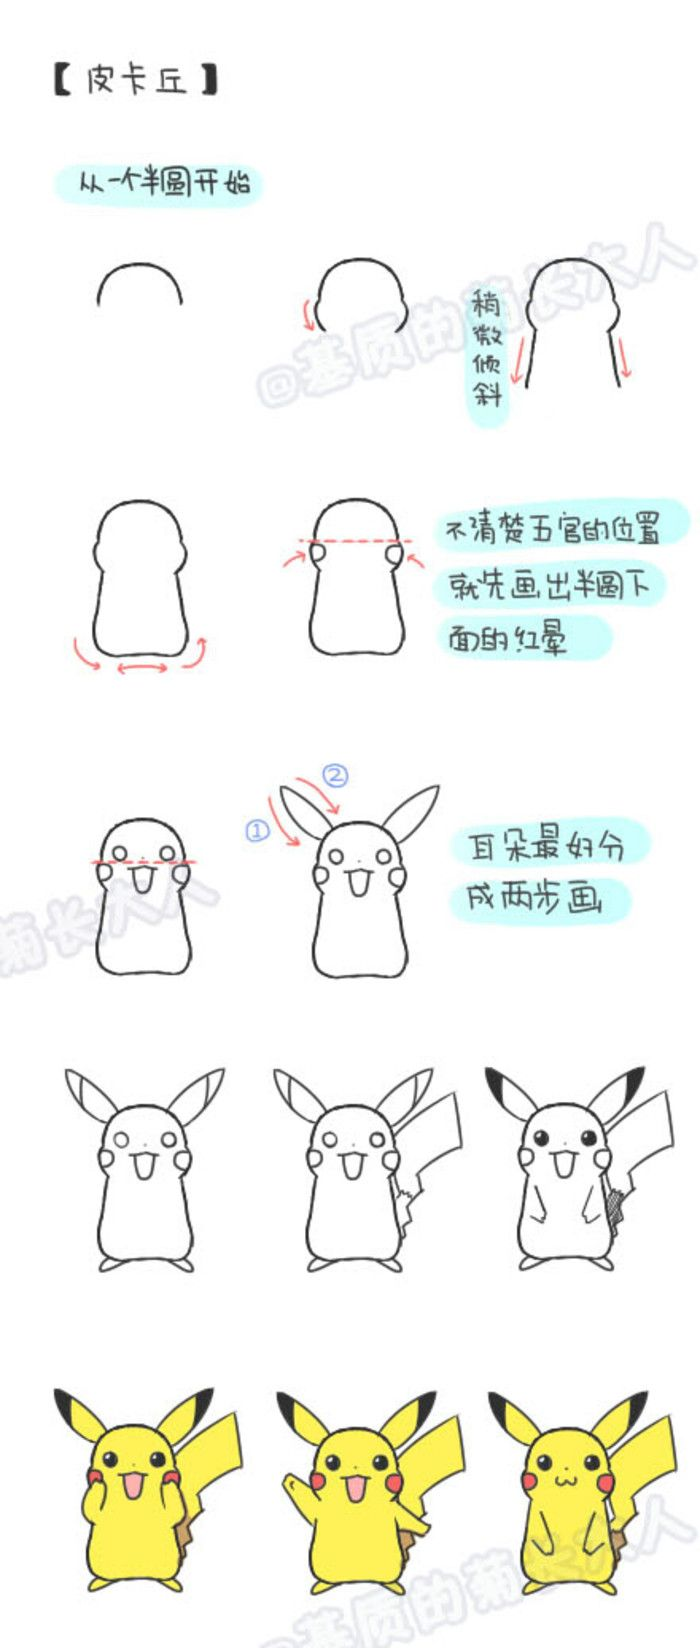 How To Draw Pikachu Ju Matrix Grew From People Kawaii Drawings Drawings Pokemon Drawings